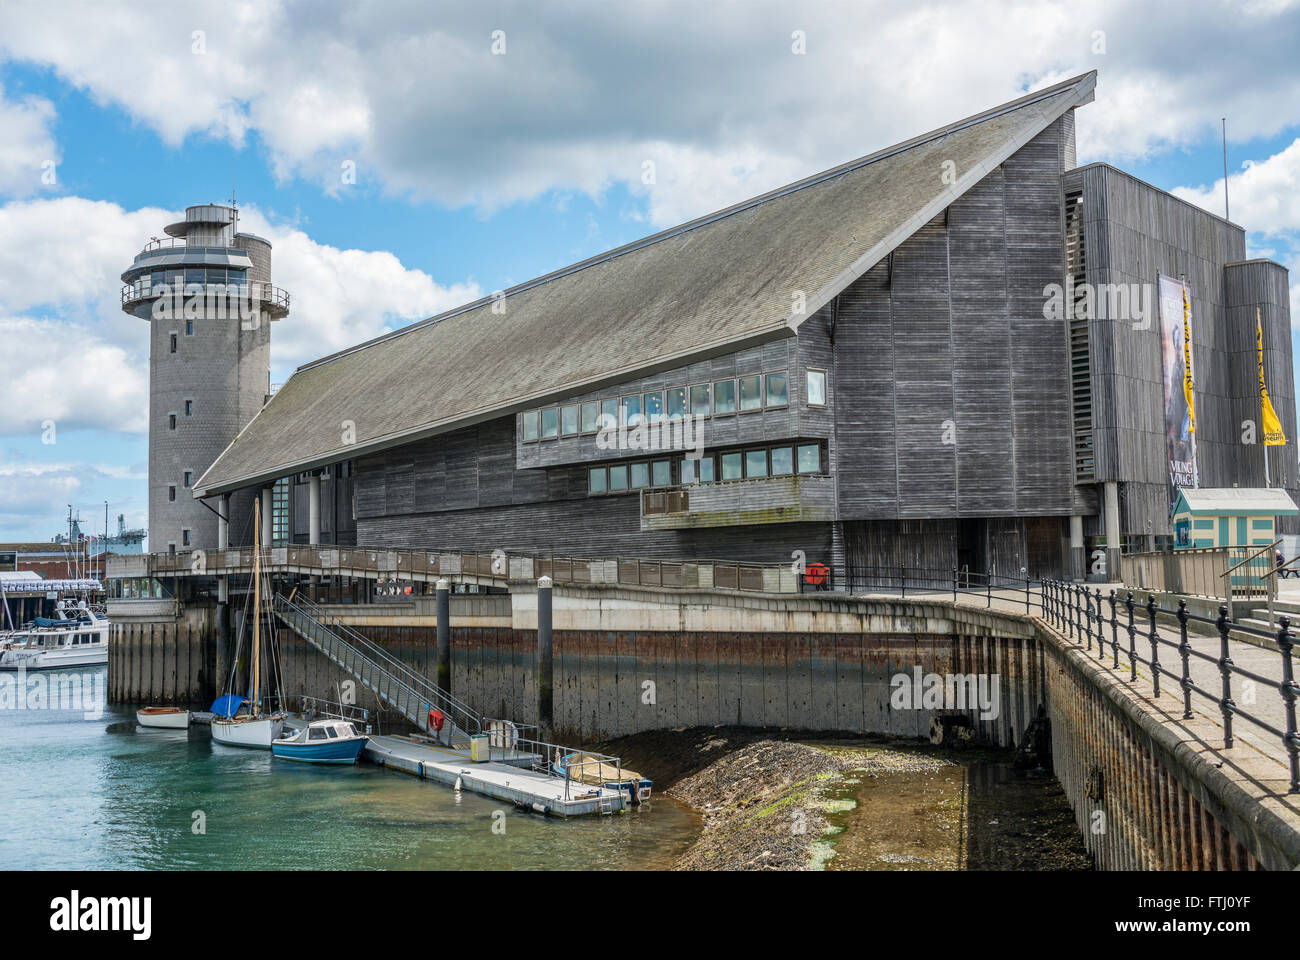 National Maritime Museum at the harbor of Falmouth, Cornwall, England, UK | National Maritime Museum Hafen von Falmouth. - Stock Image